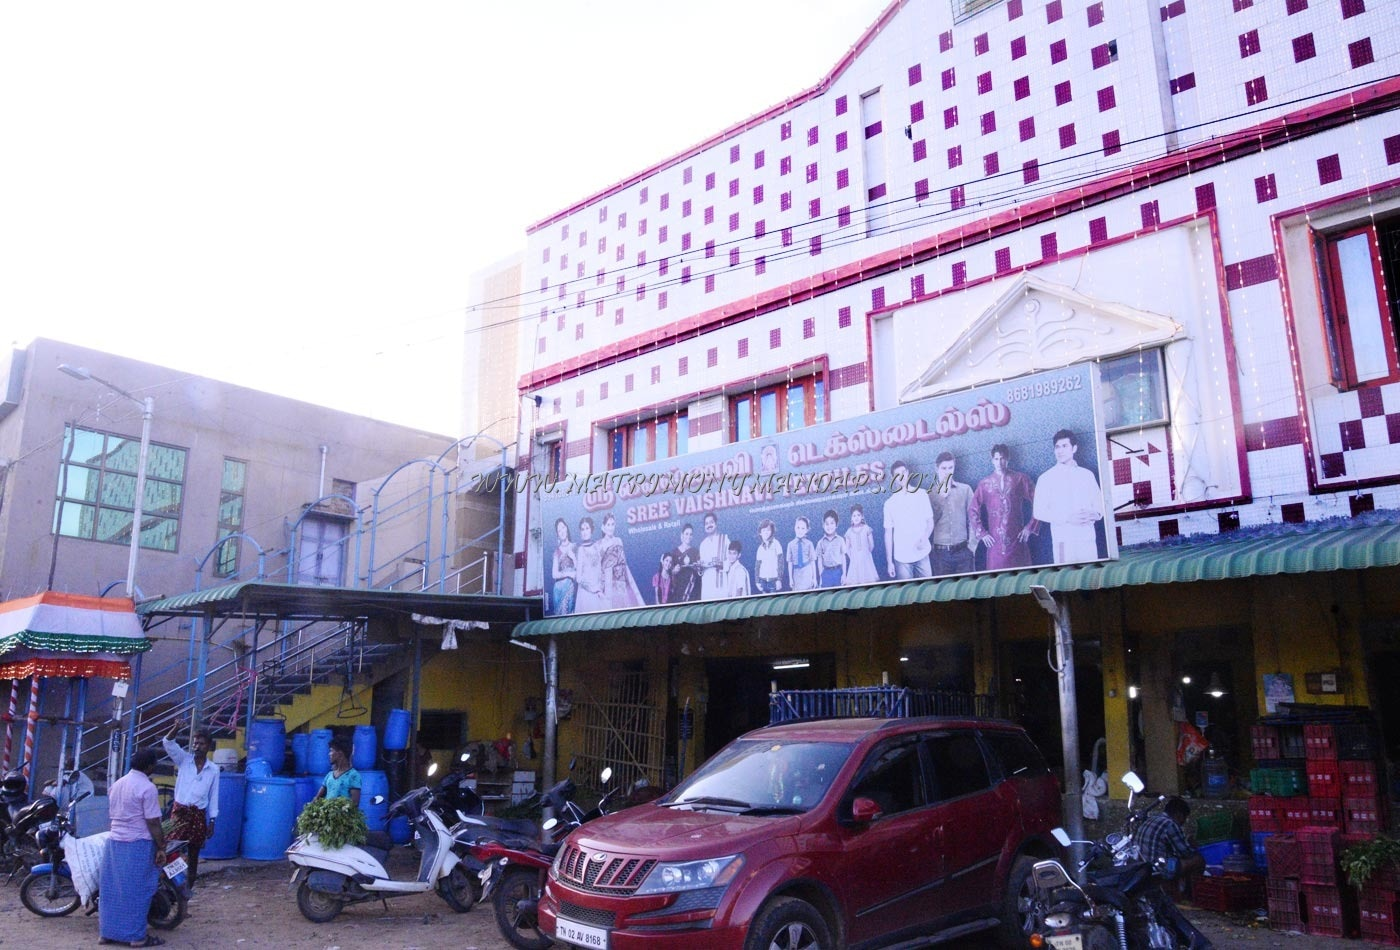 Find More Kalyana Mandapams in Villivakkam